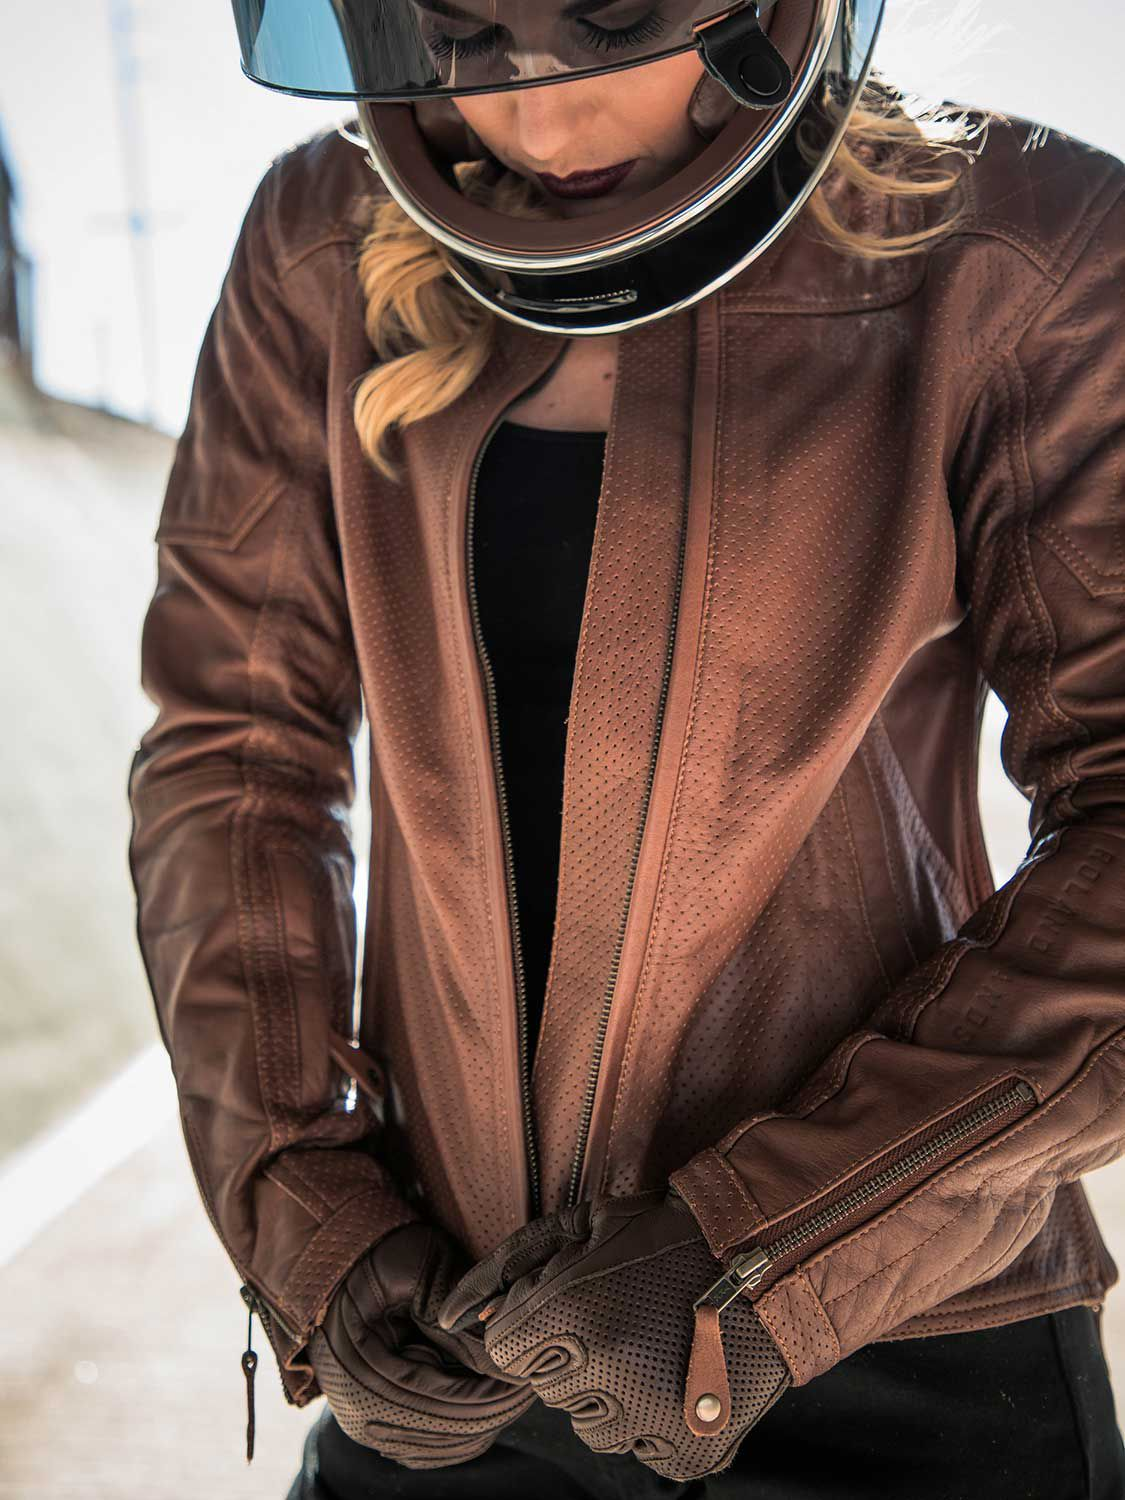 Stylish substance from the warm-weather Trinity perf jacket, which sports supple buffalo leather, Knox armor, and quilted details.